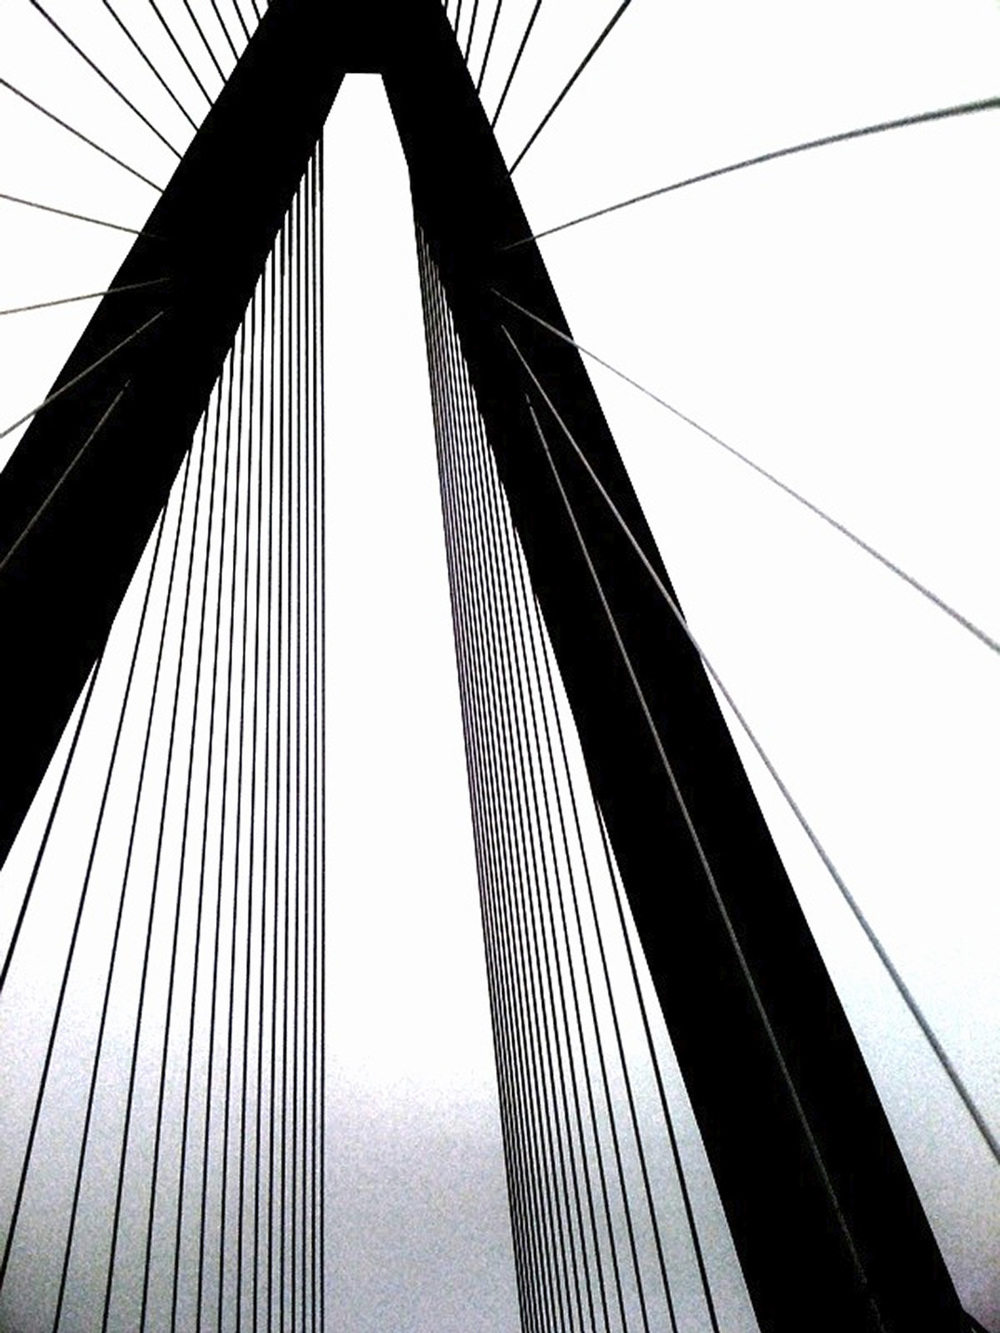 Arthur J. Ravenel Jr. Bridge